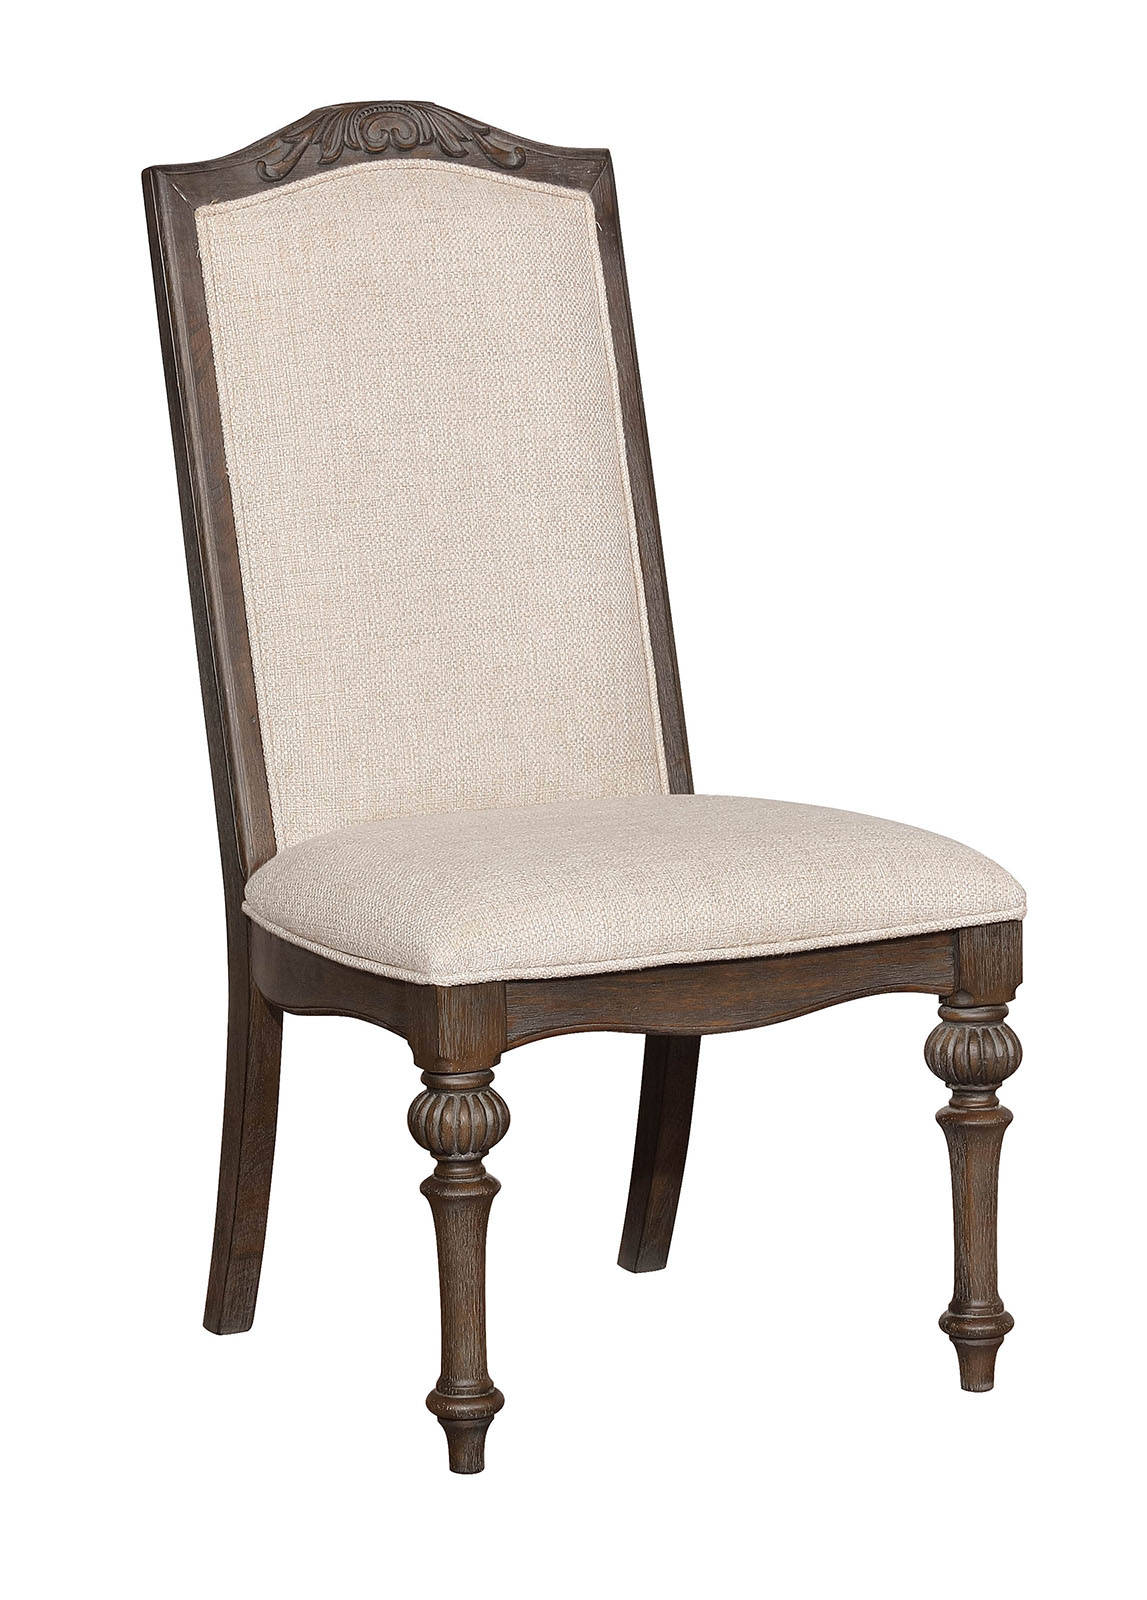 2 Furniture Of America Arcadia Ivory Side Chairs The Classy Home